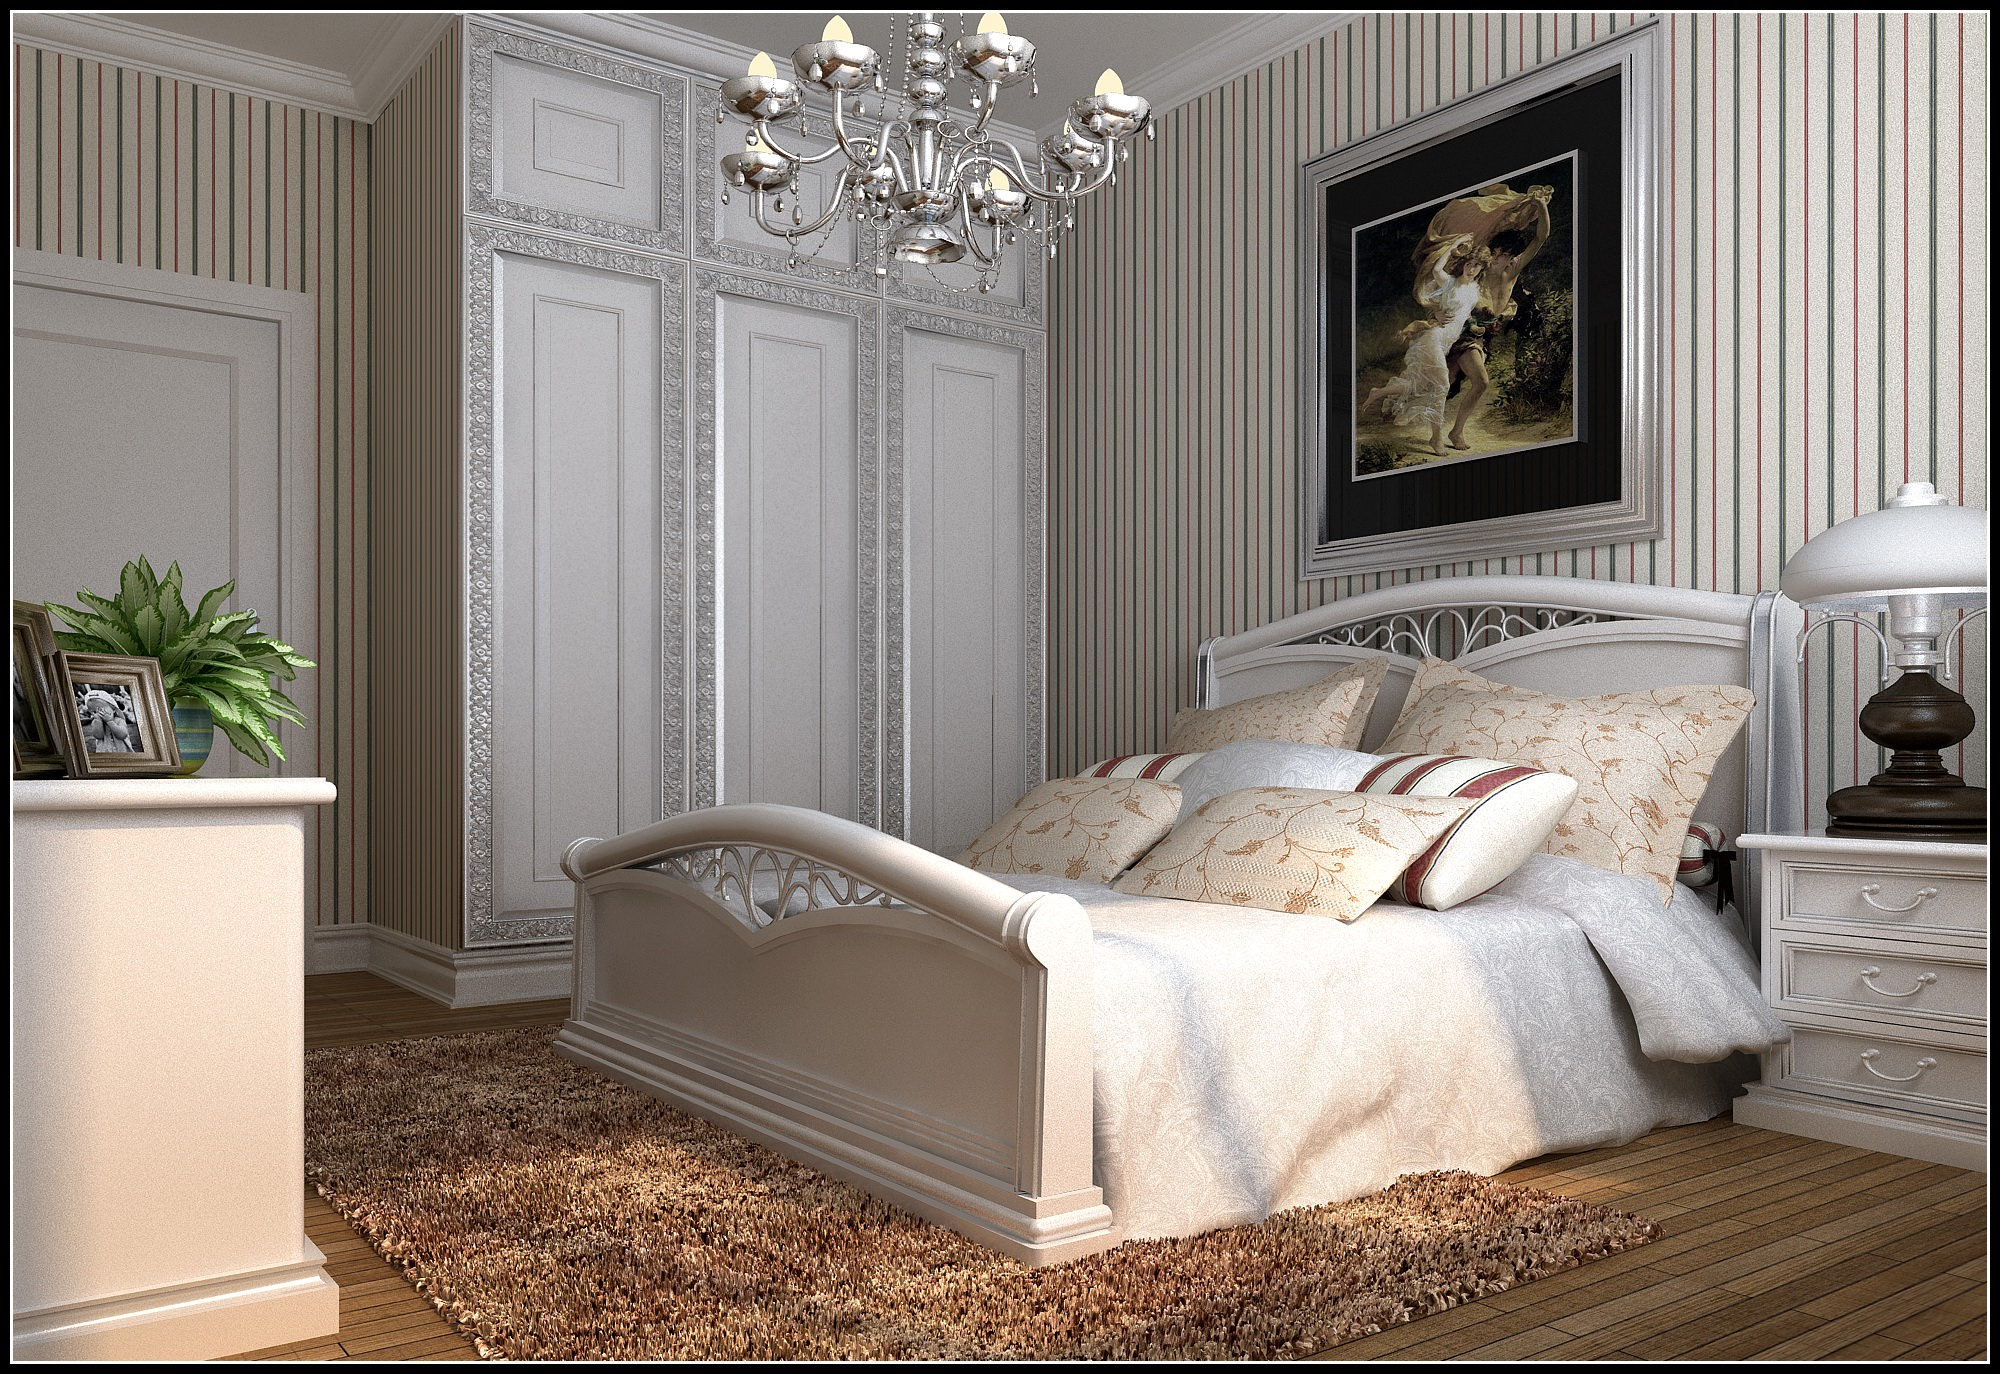 Modern Bed Room With Big White Bed 3D model   CGTrader